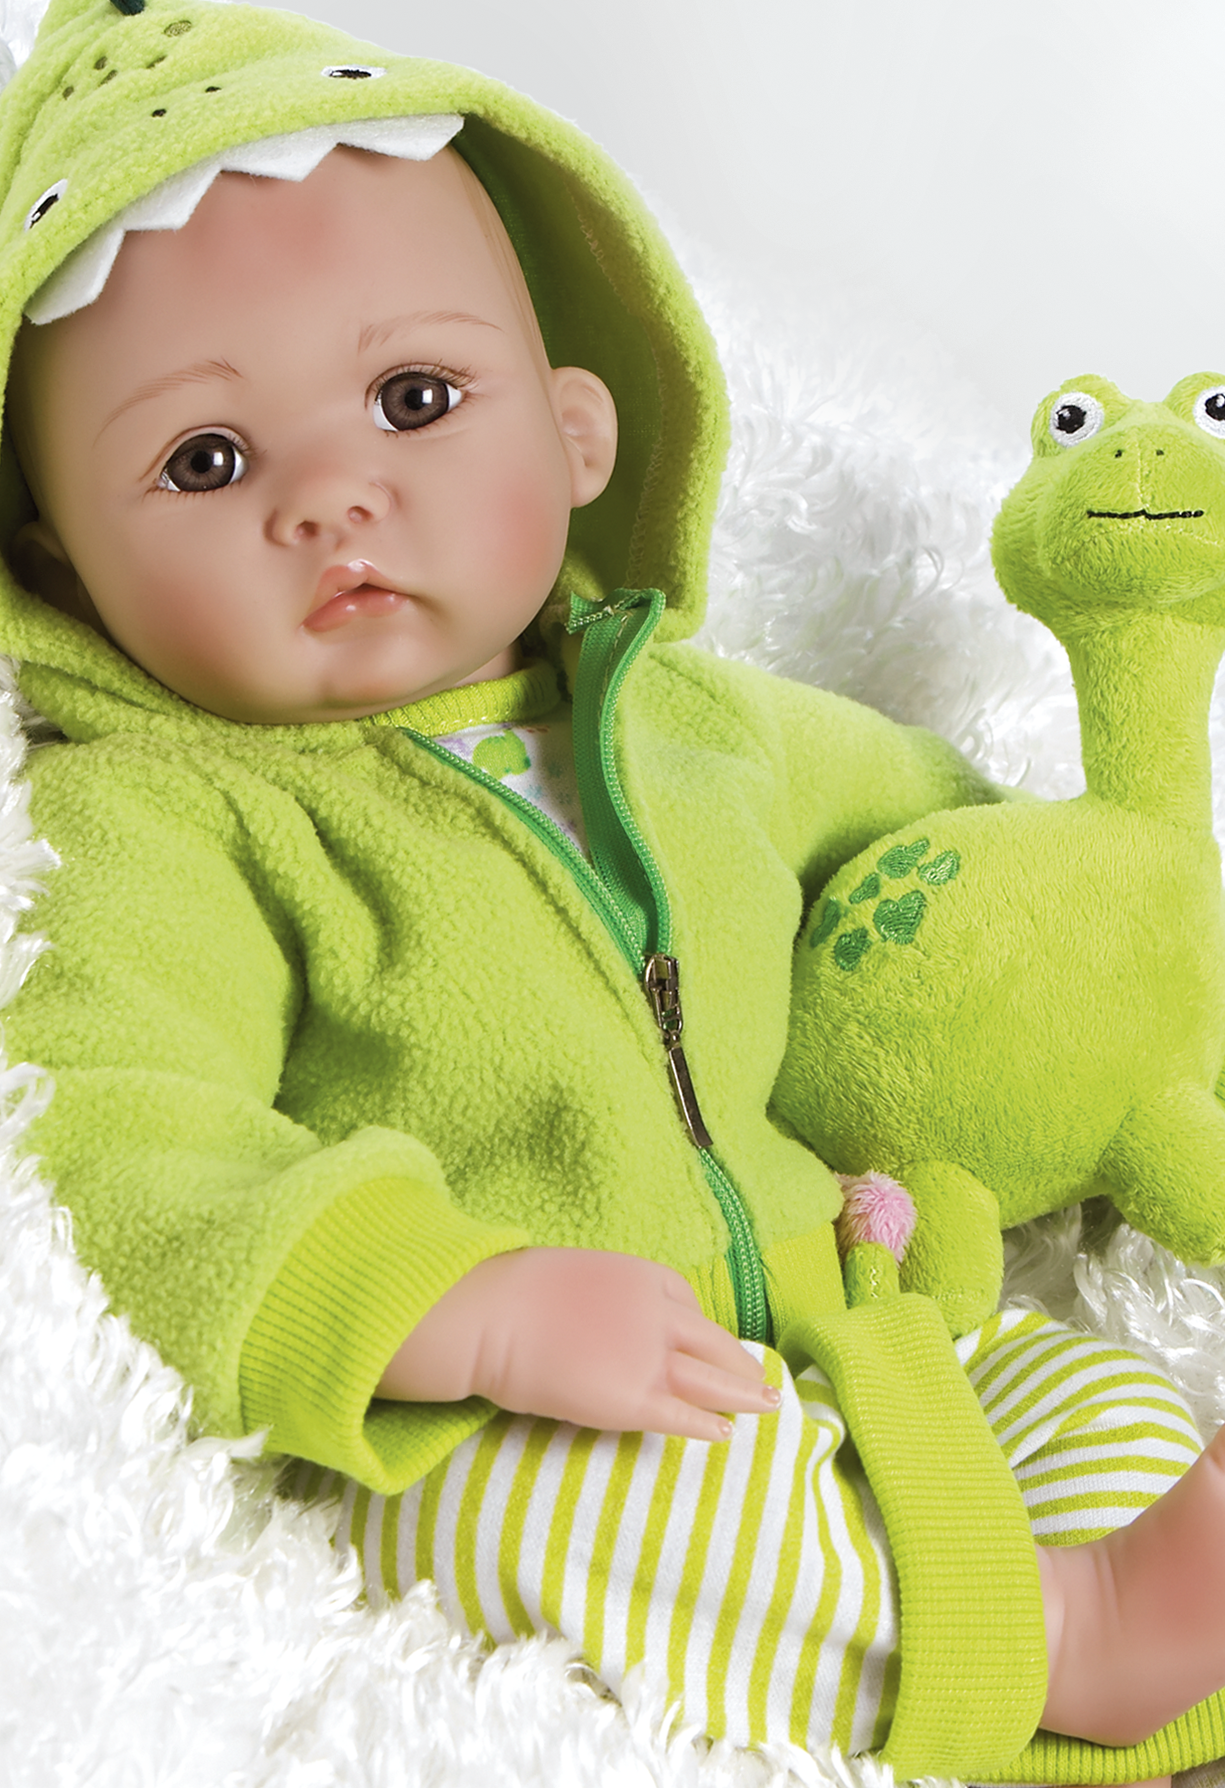 Realistic Newborn Baby Doll My Little Dino & Rex 18 inch in GentleTouch Vinyl